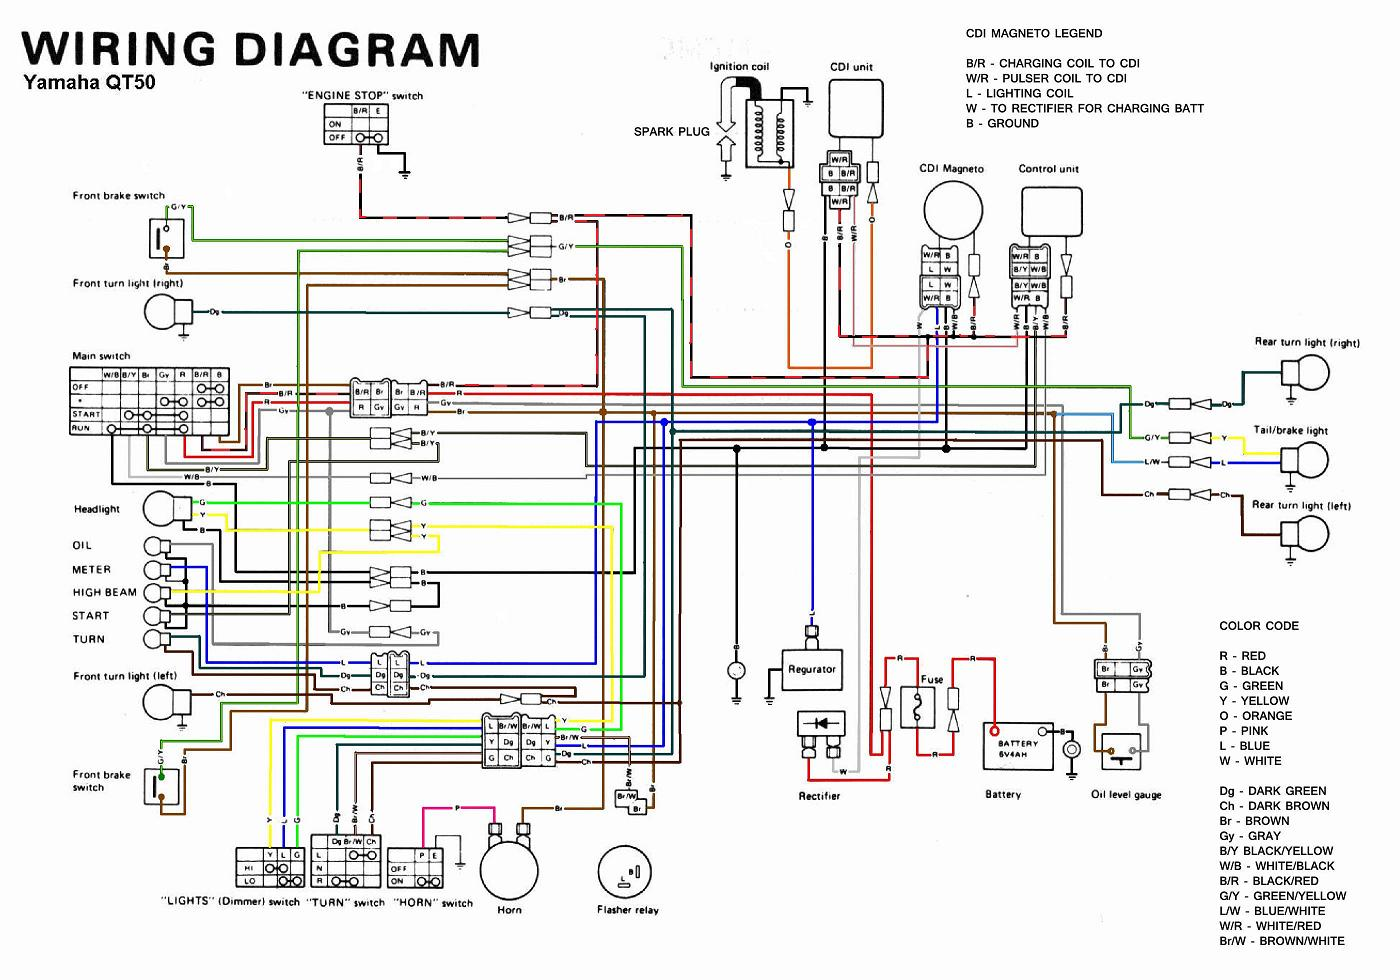 Yamaha QT50 Wiring Diagram honda 50 wiring diagram xr 400 wiring diagram \u2022 free wiring  at crackthecode.co